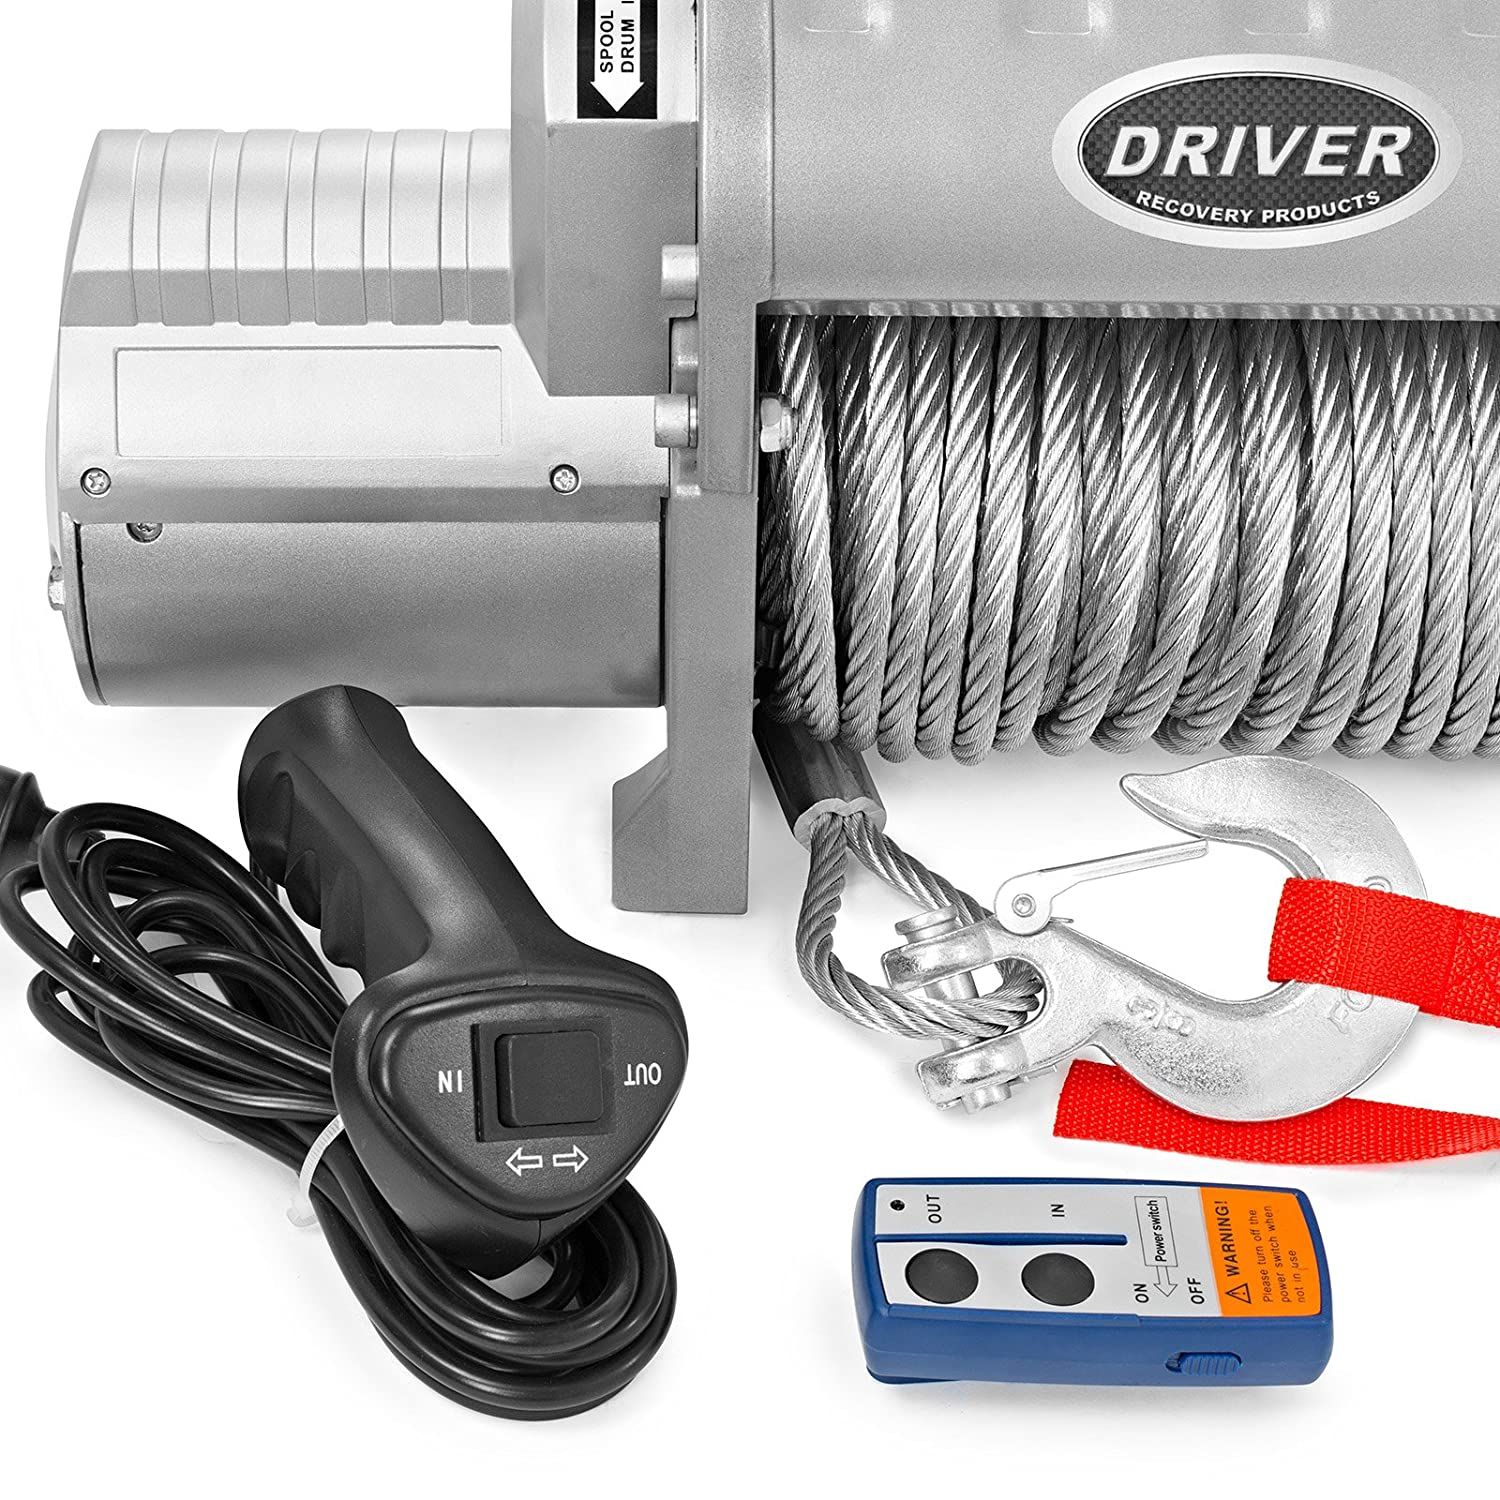 Ld12 Elite Electric Heavy Duty Recovery Winch 12000 Badland Lb Wiring Diagram Lbs Capacity Wireless Remote Control By Driver Products Automotive